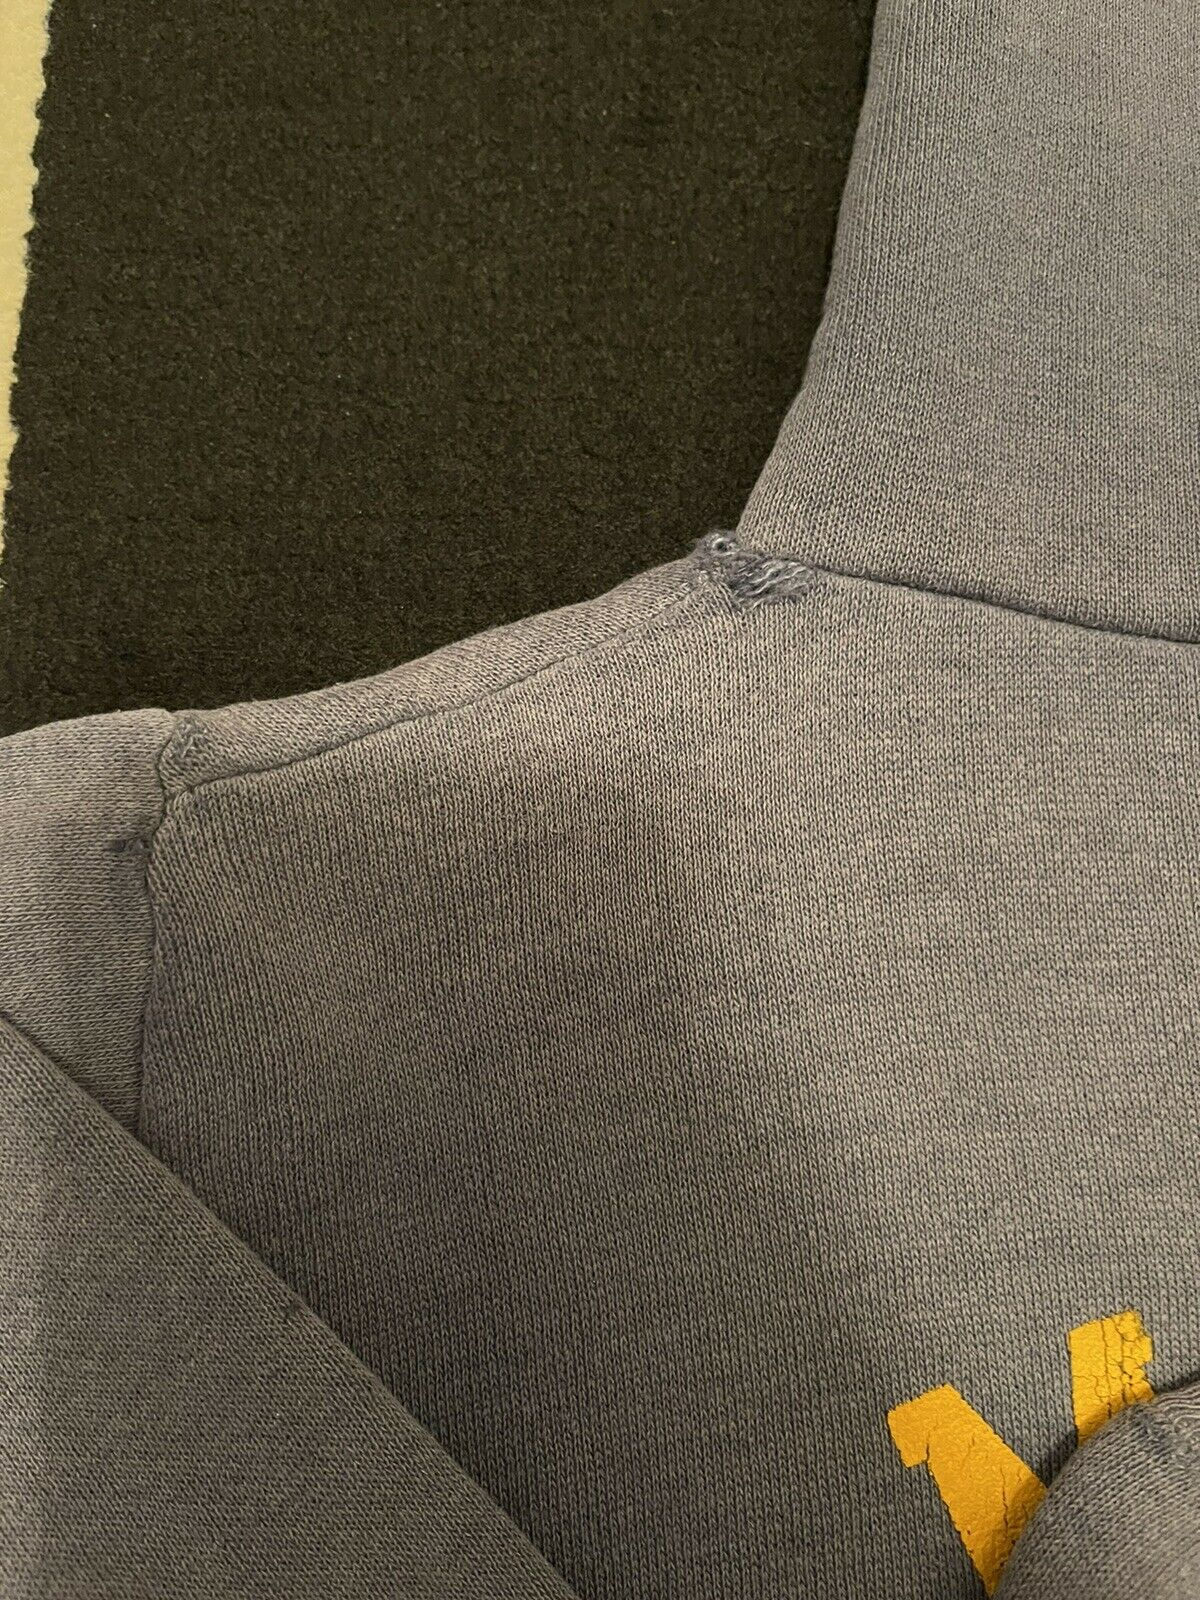 VTG 70s Sun Faded Russell Gold Tag M Hoodie Sweat… - image 11